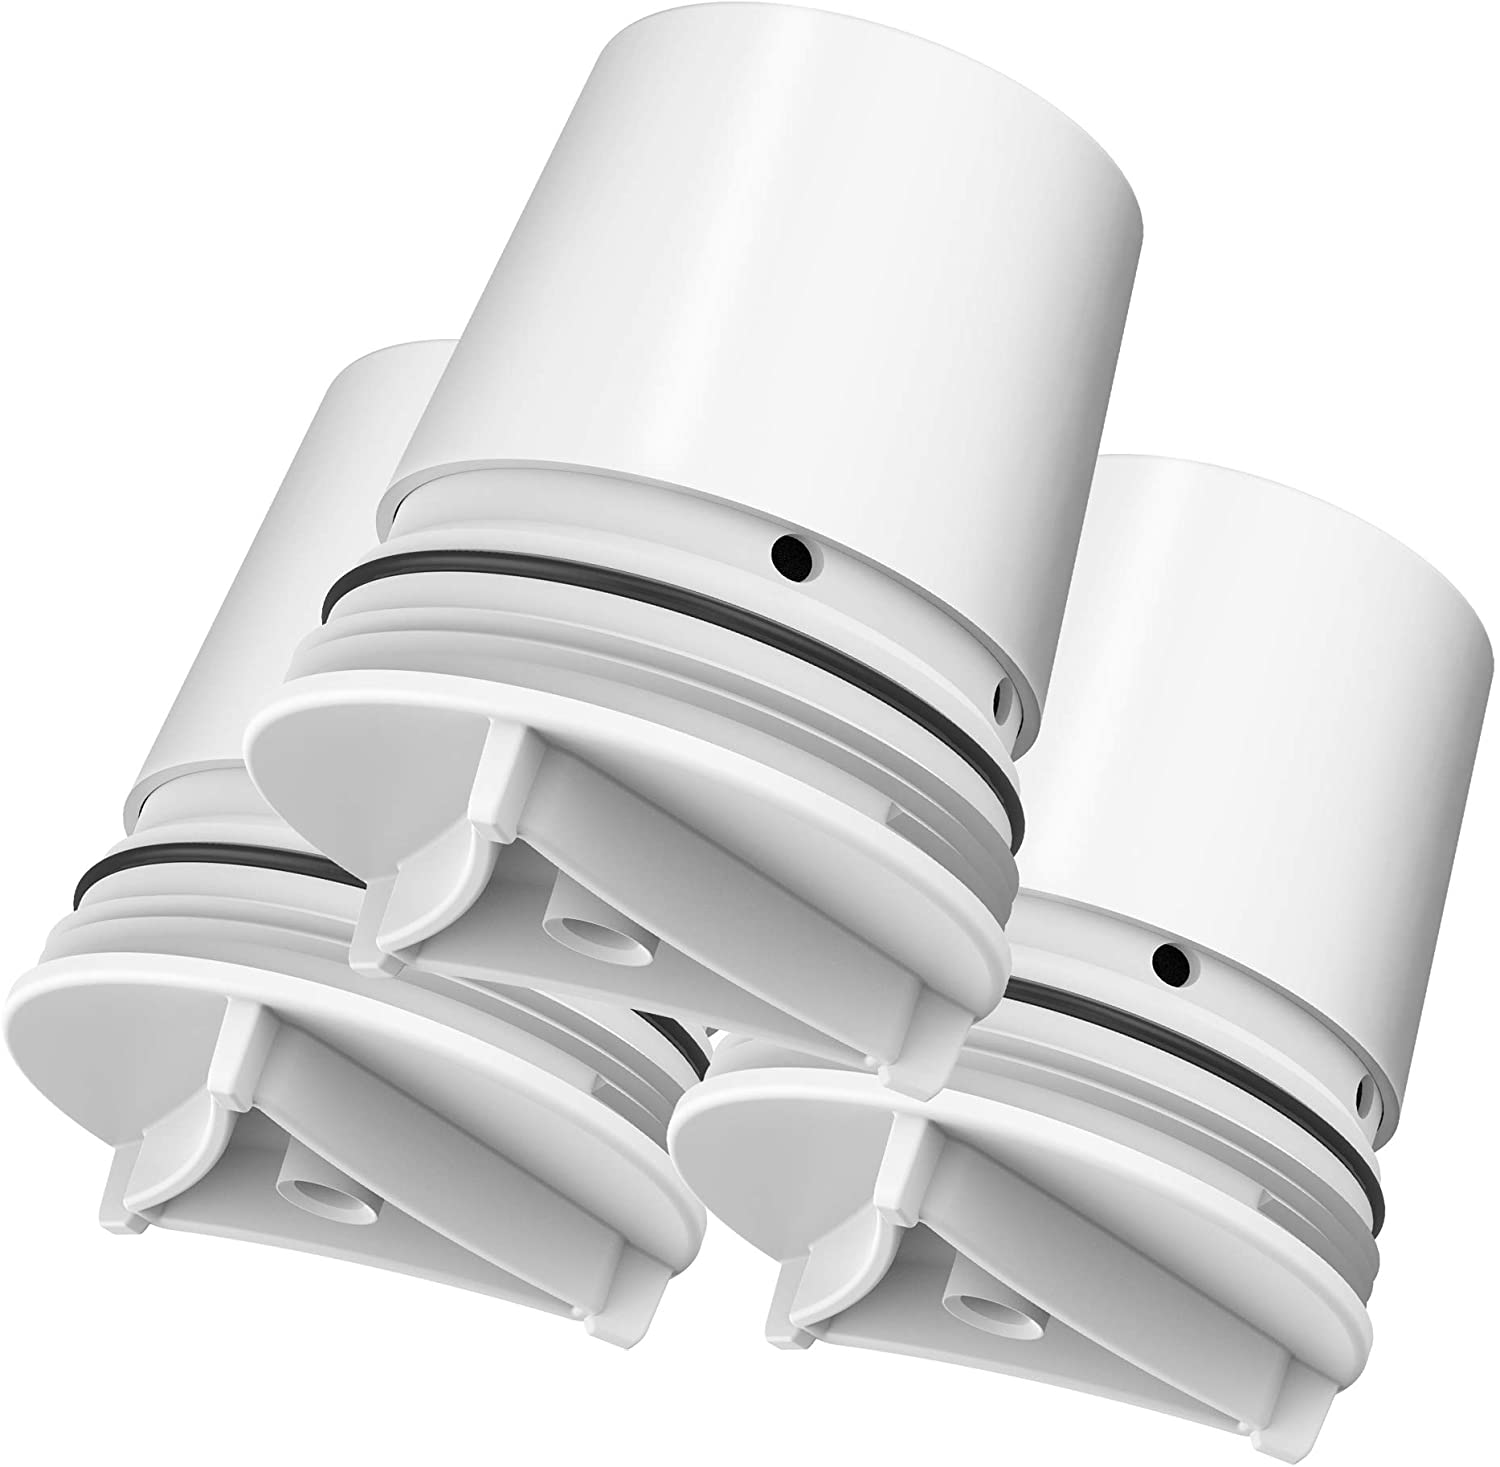 Pack of 3 AQUA CREST White Finish Compatible with Culligan FM-15RA Water Filter AQUACREST Replacement FM-15RA Faucet Water Filter Culligan FM-15A Filtration System